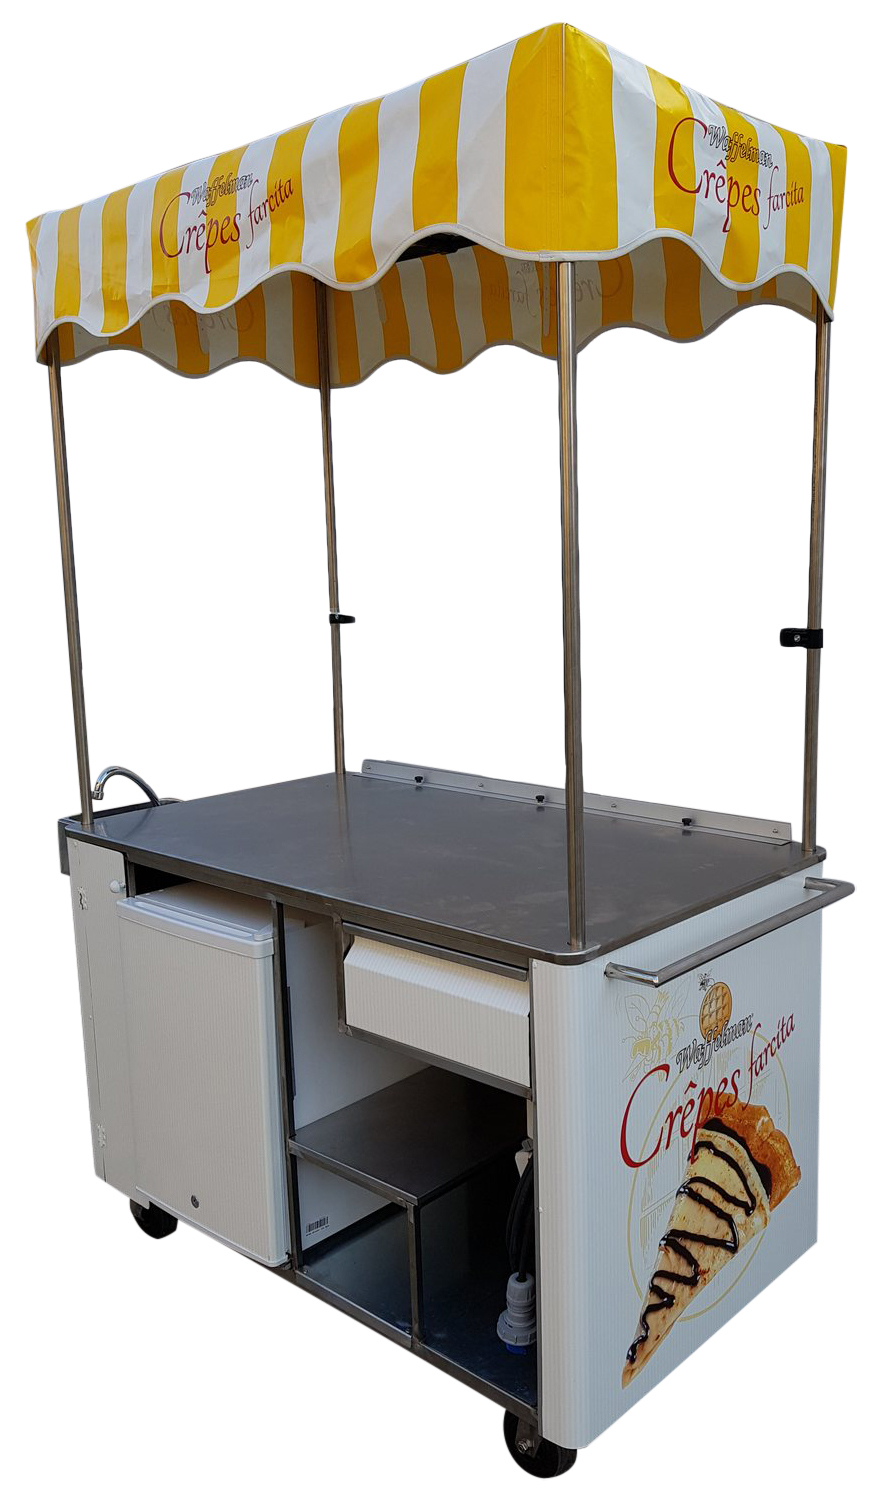 CARRELLO_A_SPINTA_PUSH_CART_per_CREPES_e_WAFFEL_02